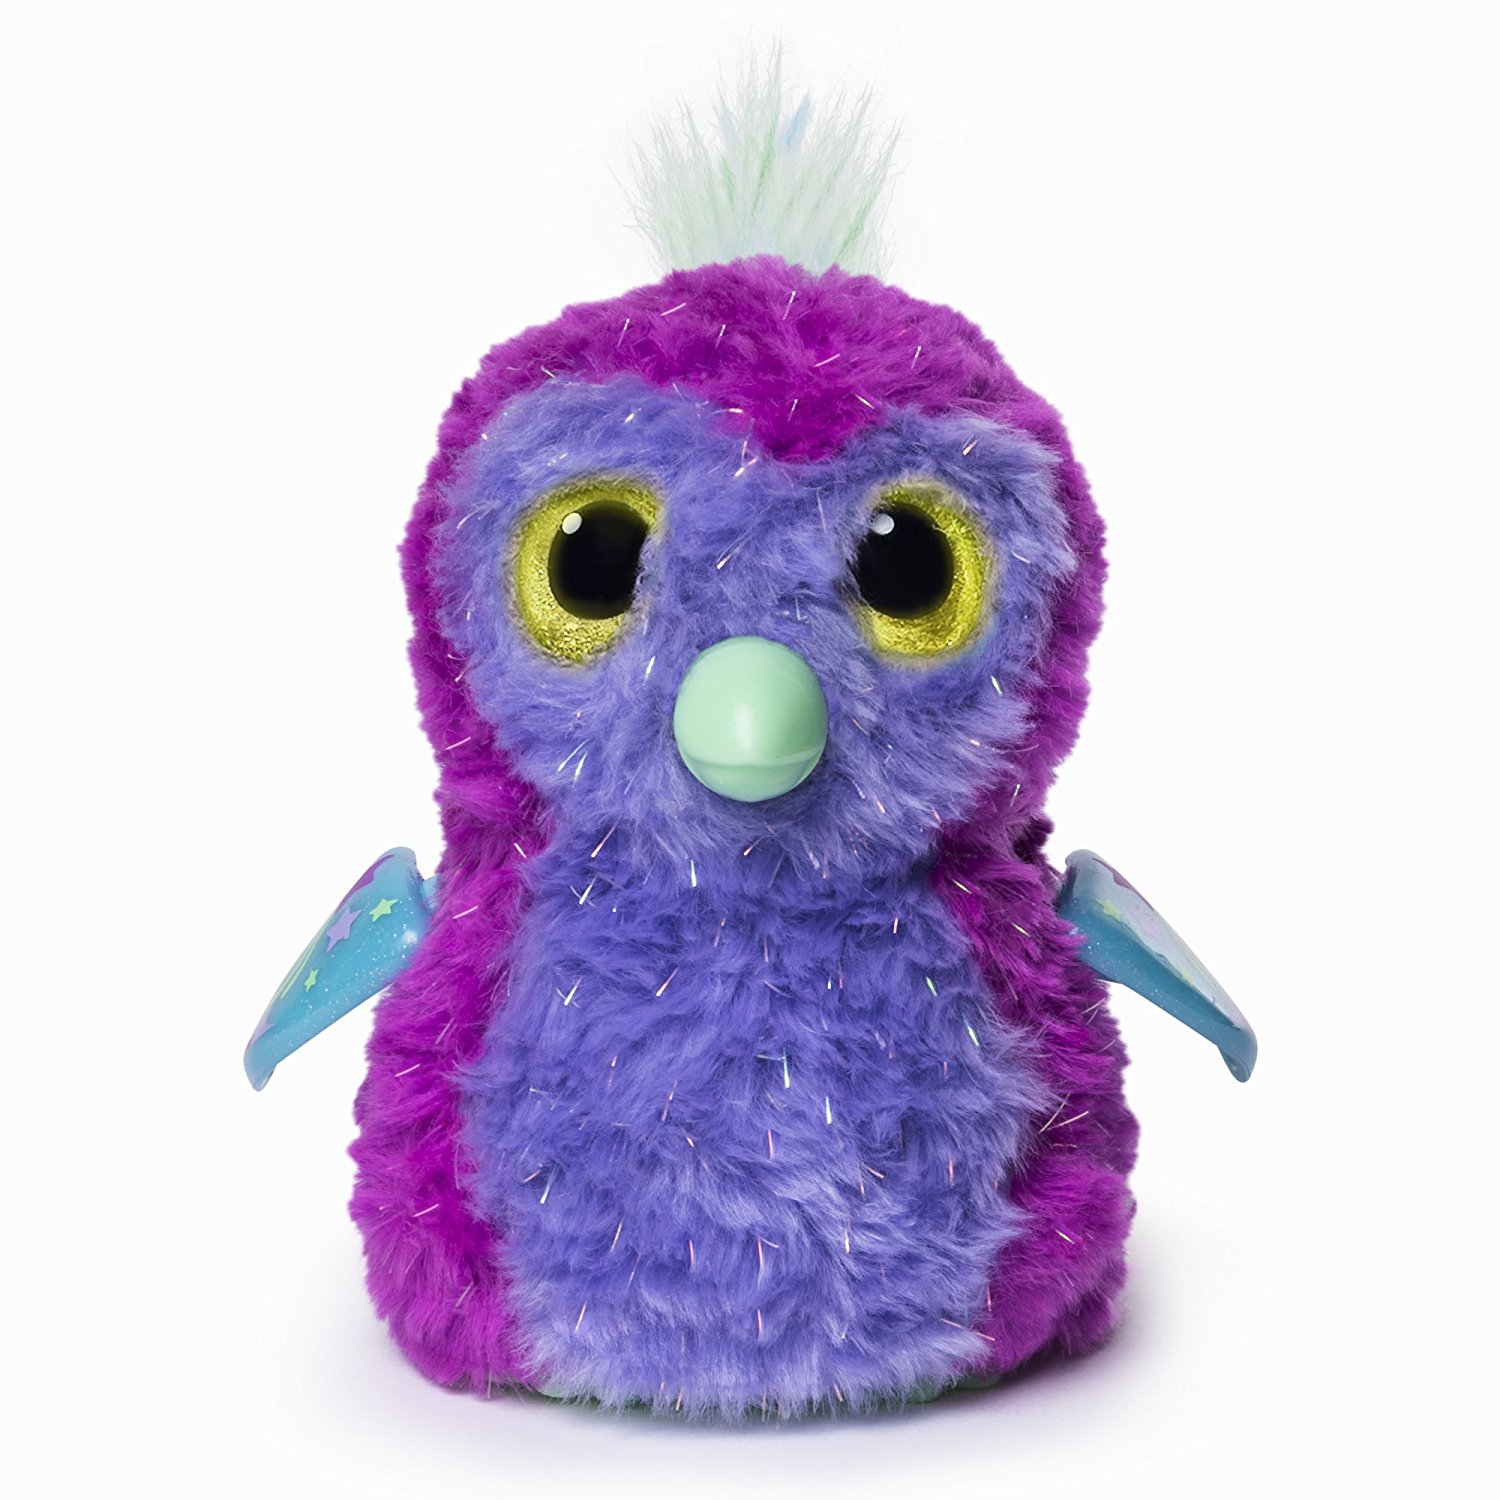 Plush – What Toys Are Popular